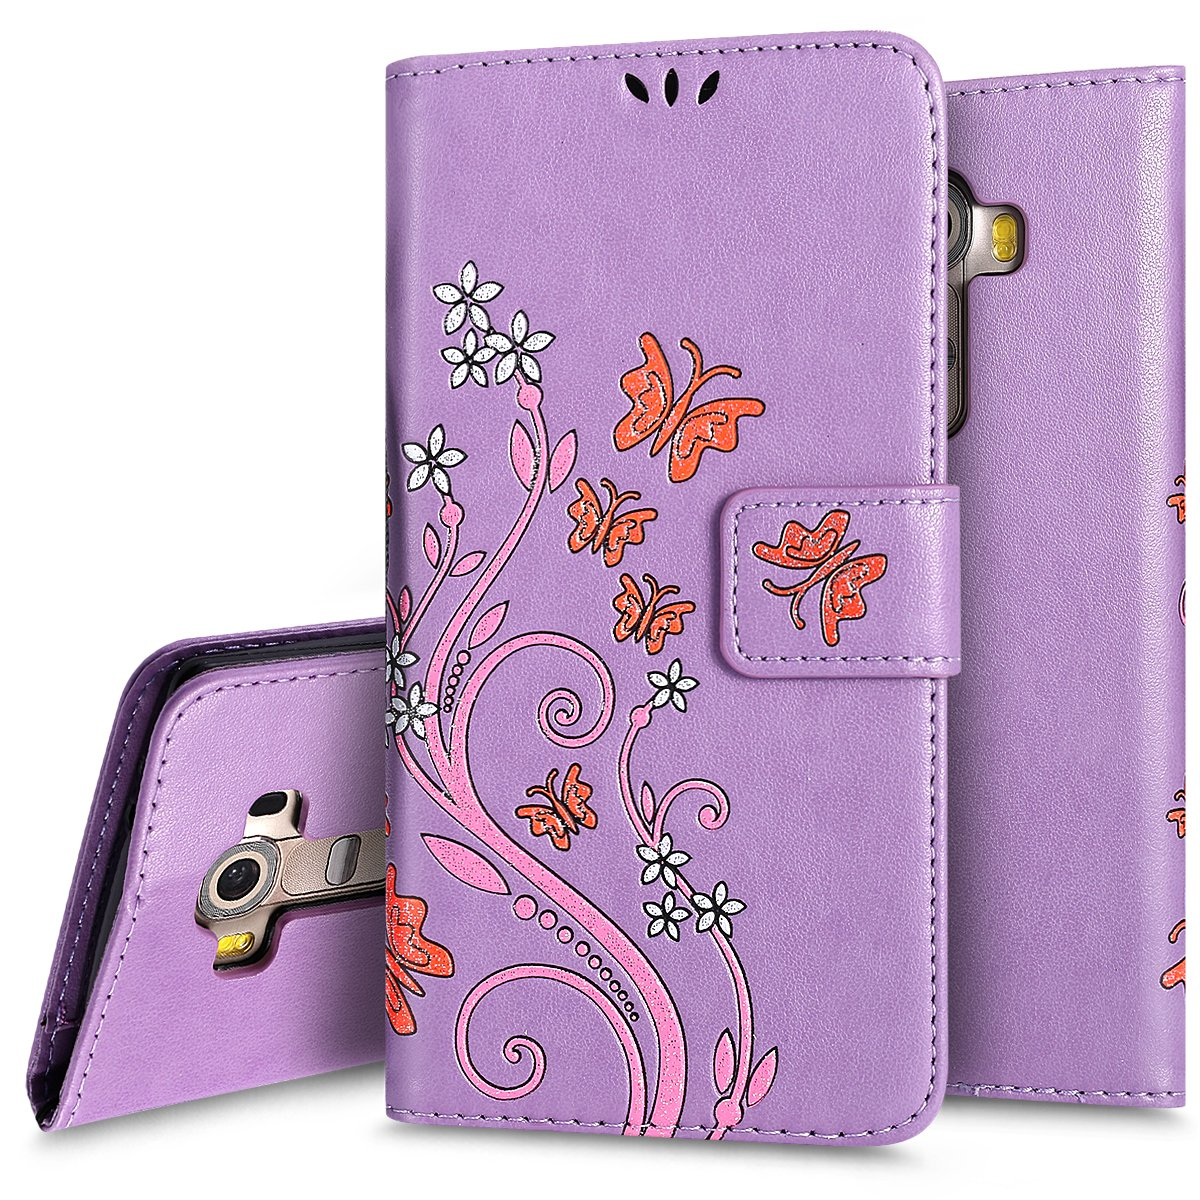 Custodia Case Cover per LG G4, Ukayfe Luxury Puro Colore Modello Goffratura Fiore e Farfalla Cristallo 3D Design Bumper Slim Folio Protectiva Lussuosa Custodia Cover per LG G4, [PU Leather] [Shock-Absorption] Portafoglio Cover Custodia con Super Sottile Mo